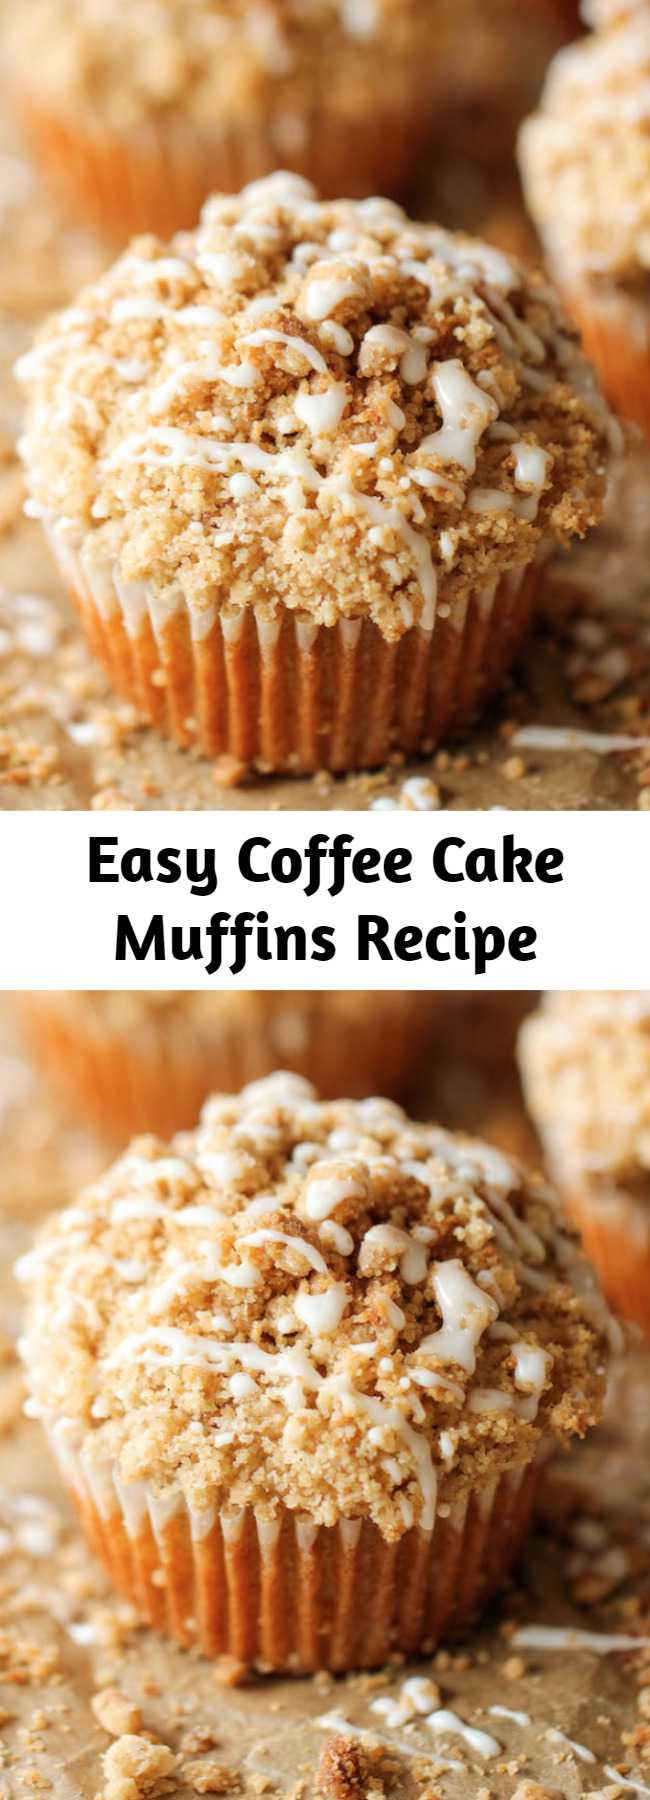 Easy Coffee Cake Muffins Recipe - The classic coffee cake is transformed into a convenient muffin, loaded with a mile-high crumb topping!